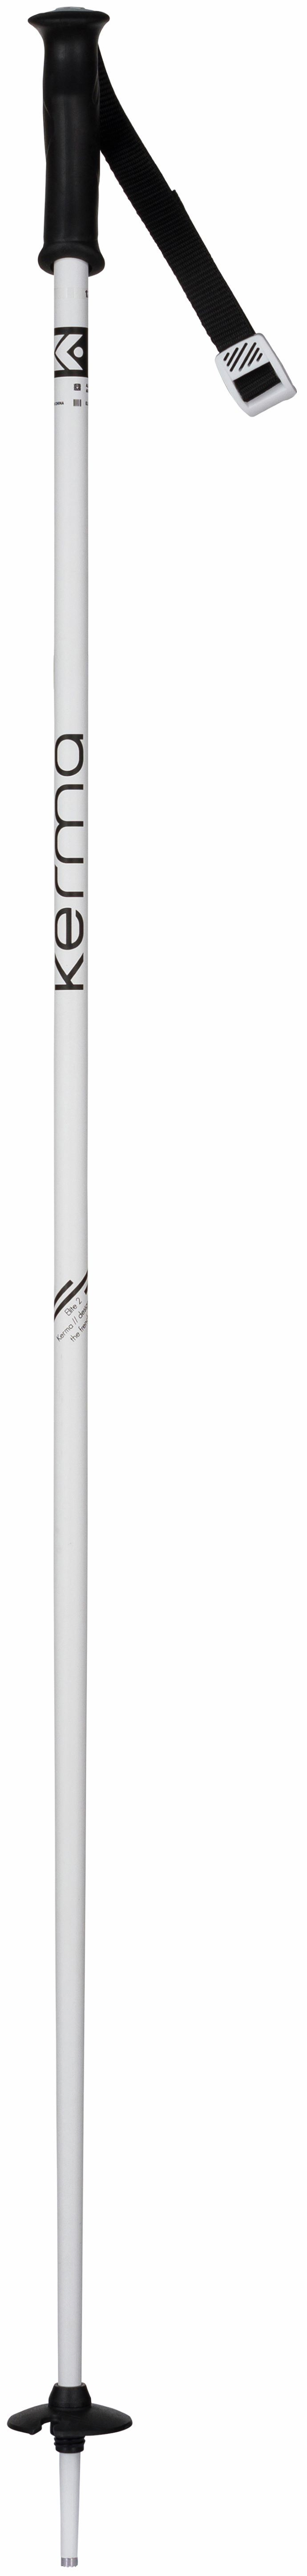 KERMA WOMEN'S ELITE 2 SKI POLES WHITE